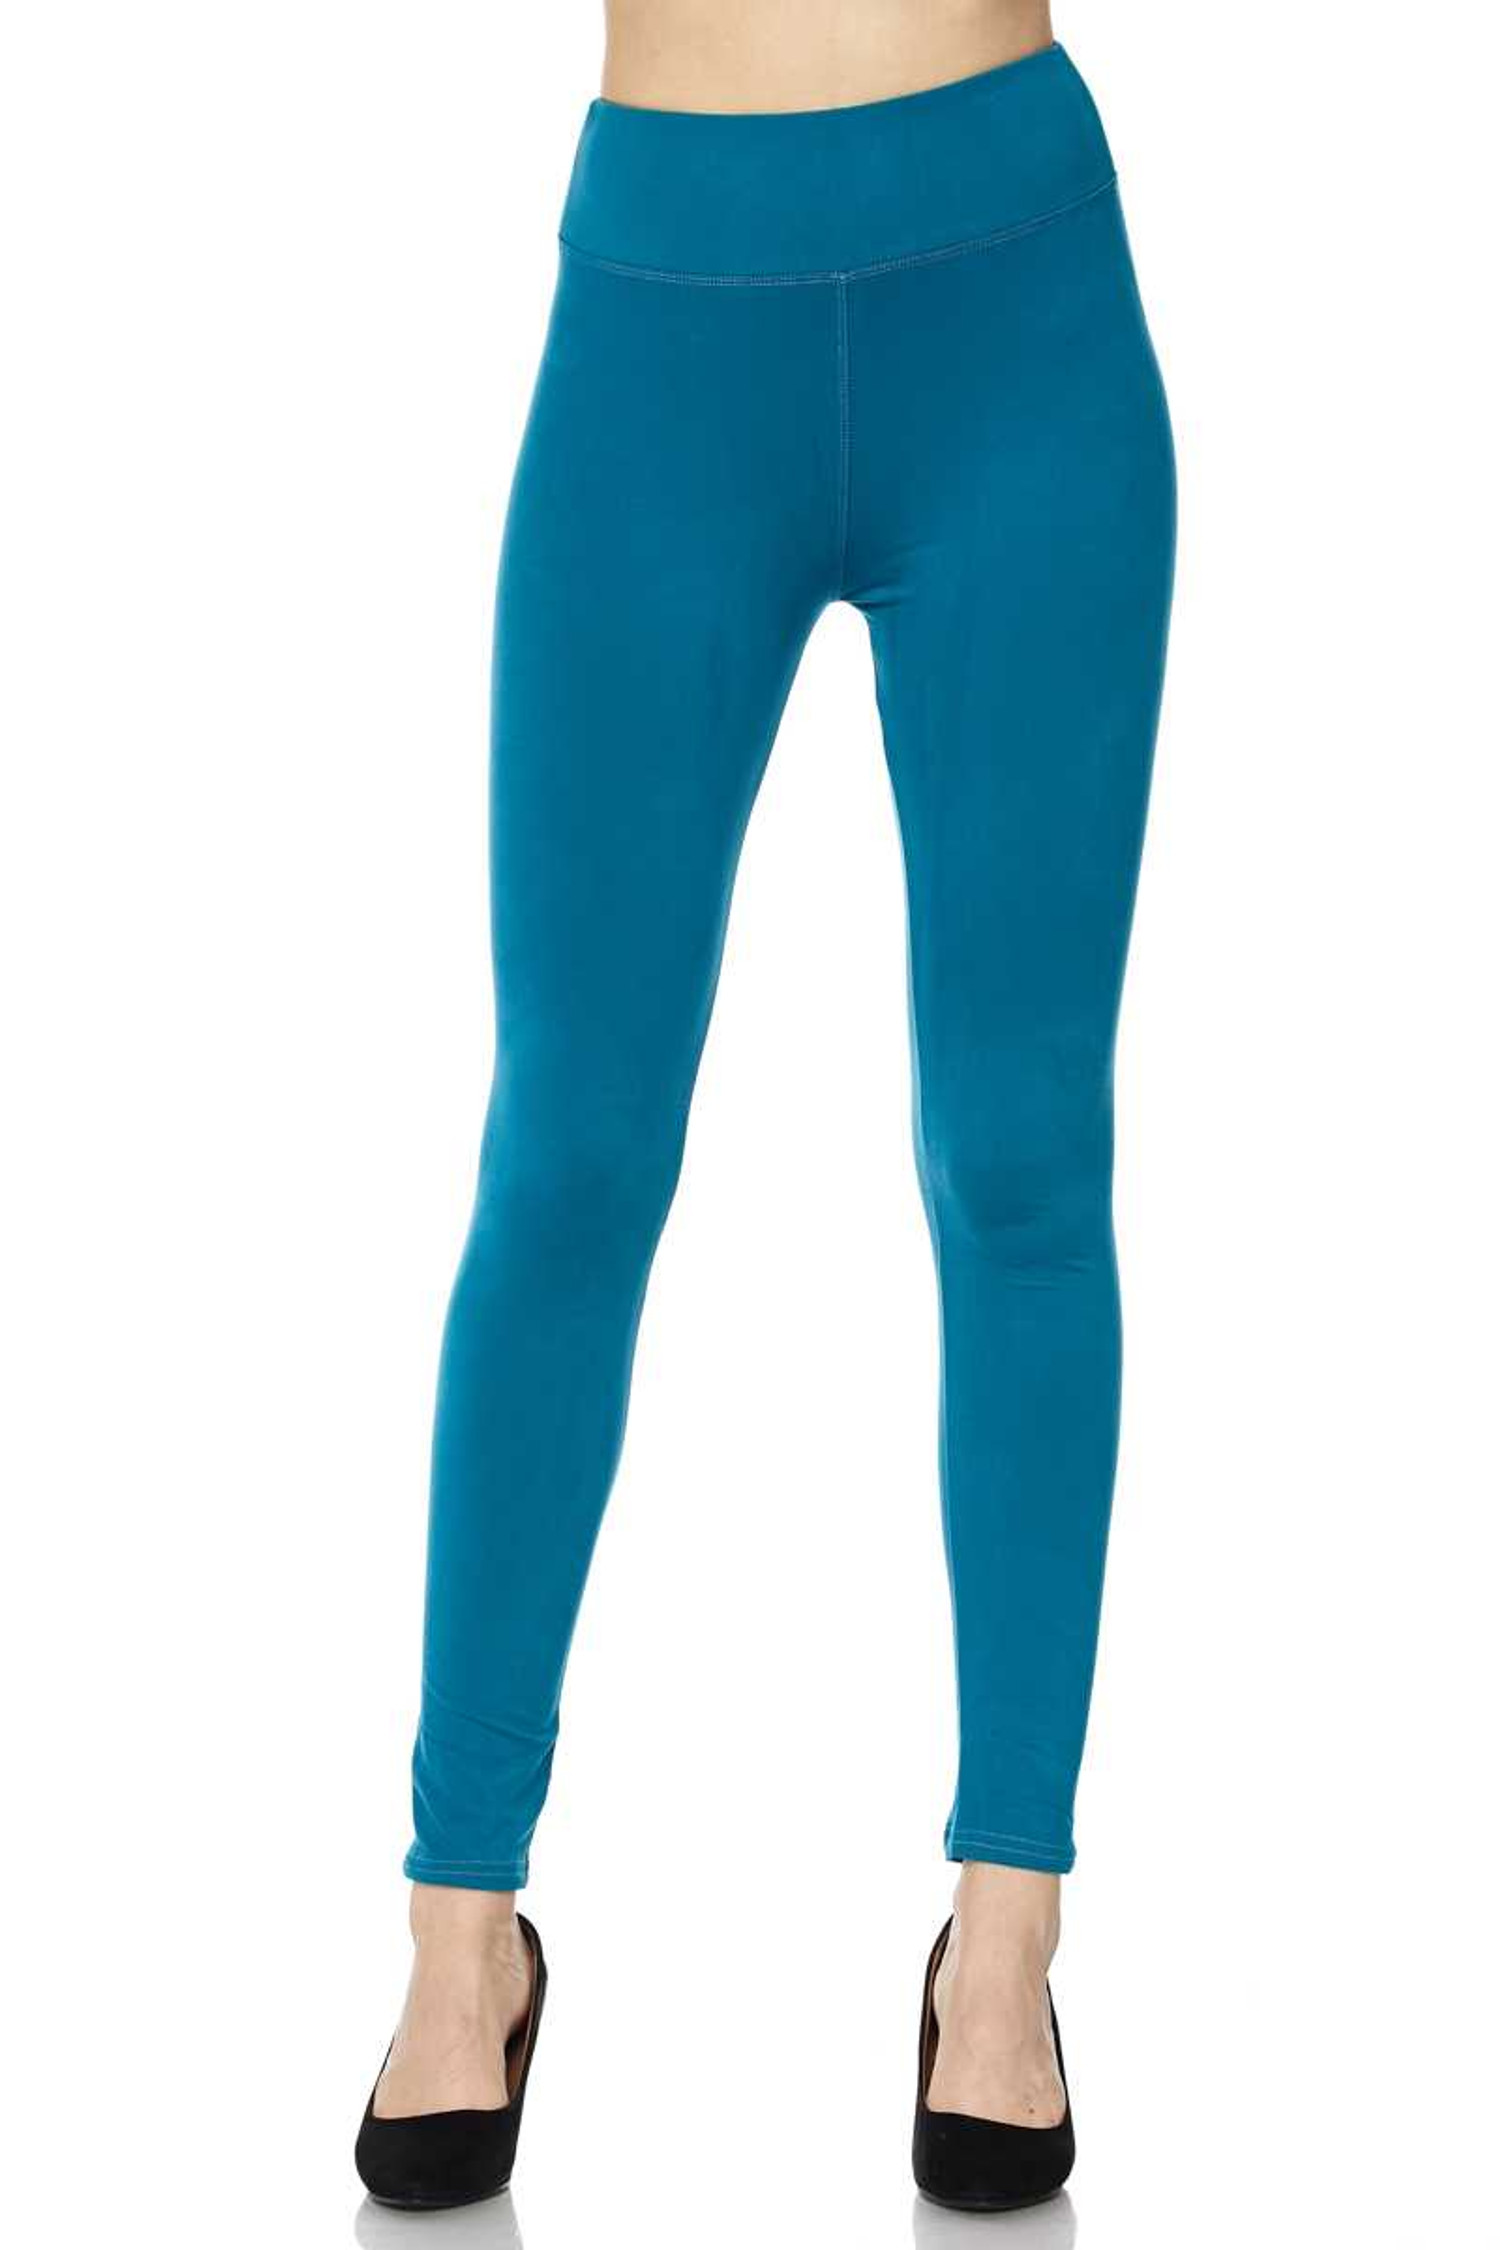 Brushed High Waisted Plus Size Basic Solid Leggings - 3 Inch Band